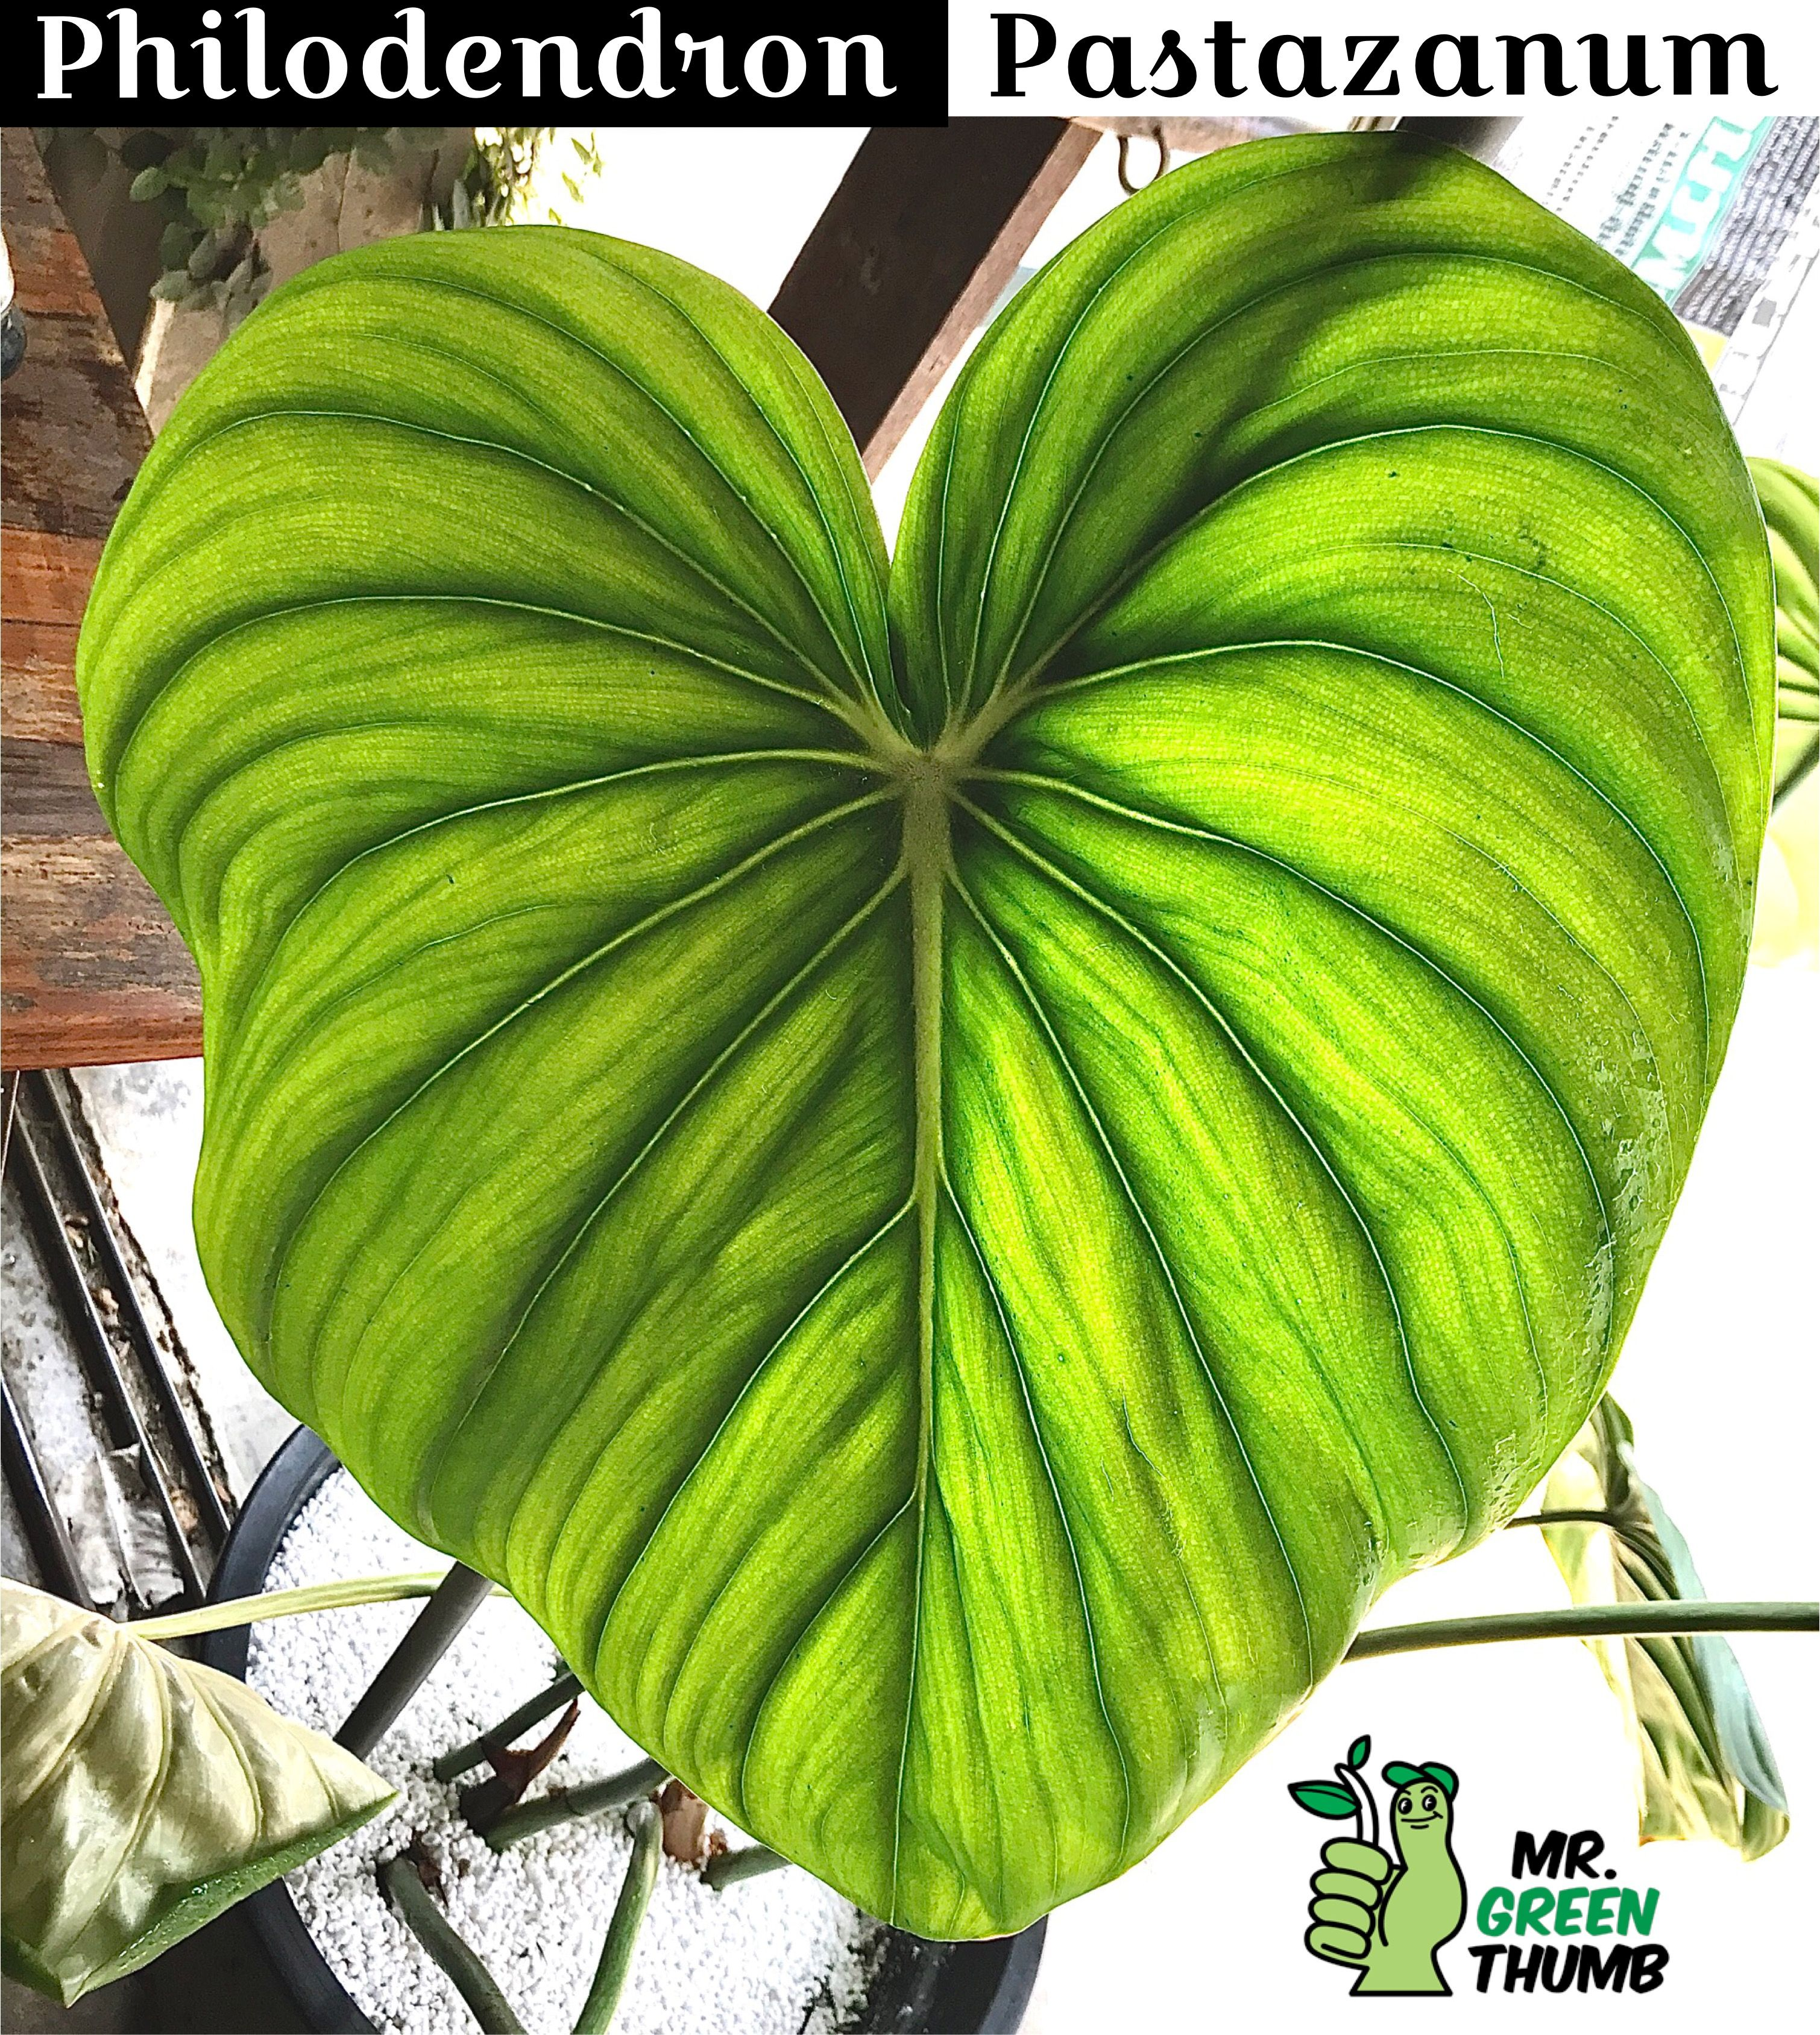 My Philodendron pastazanum is very different from the